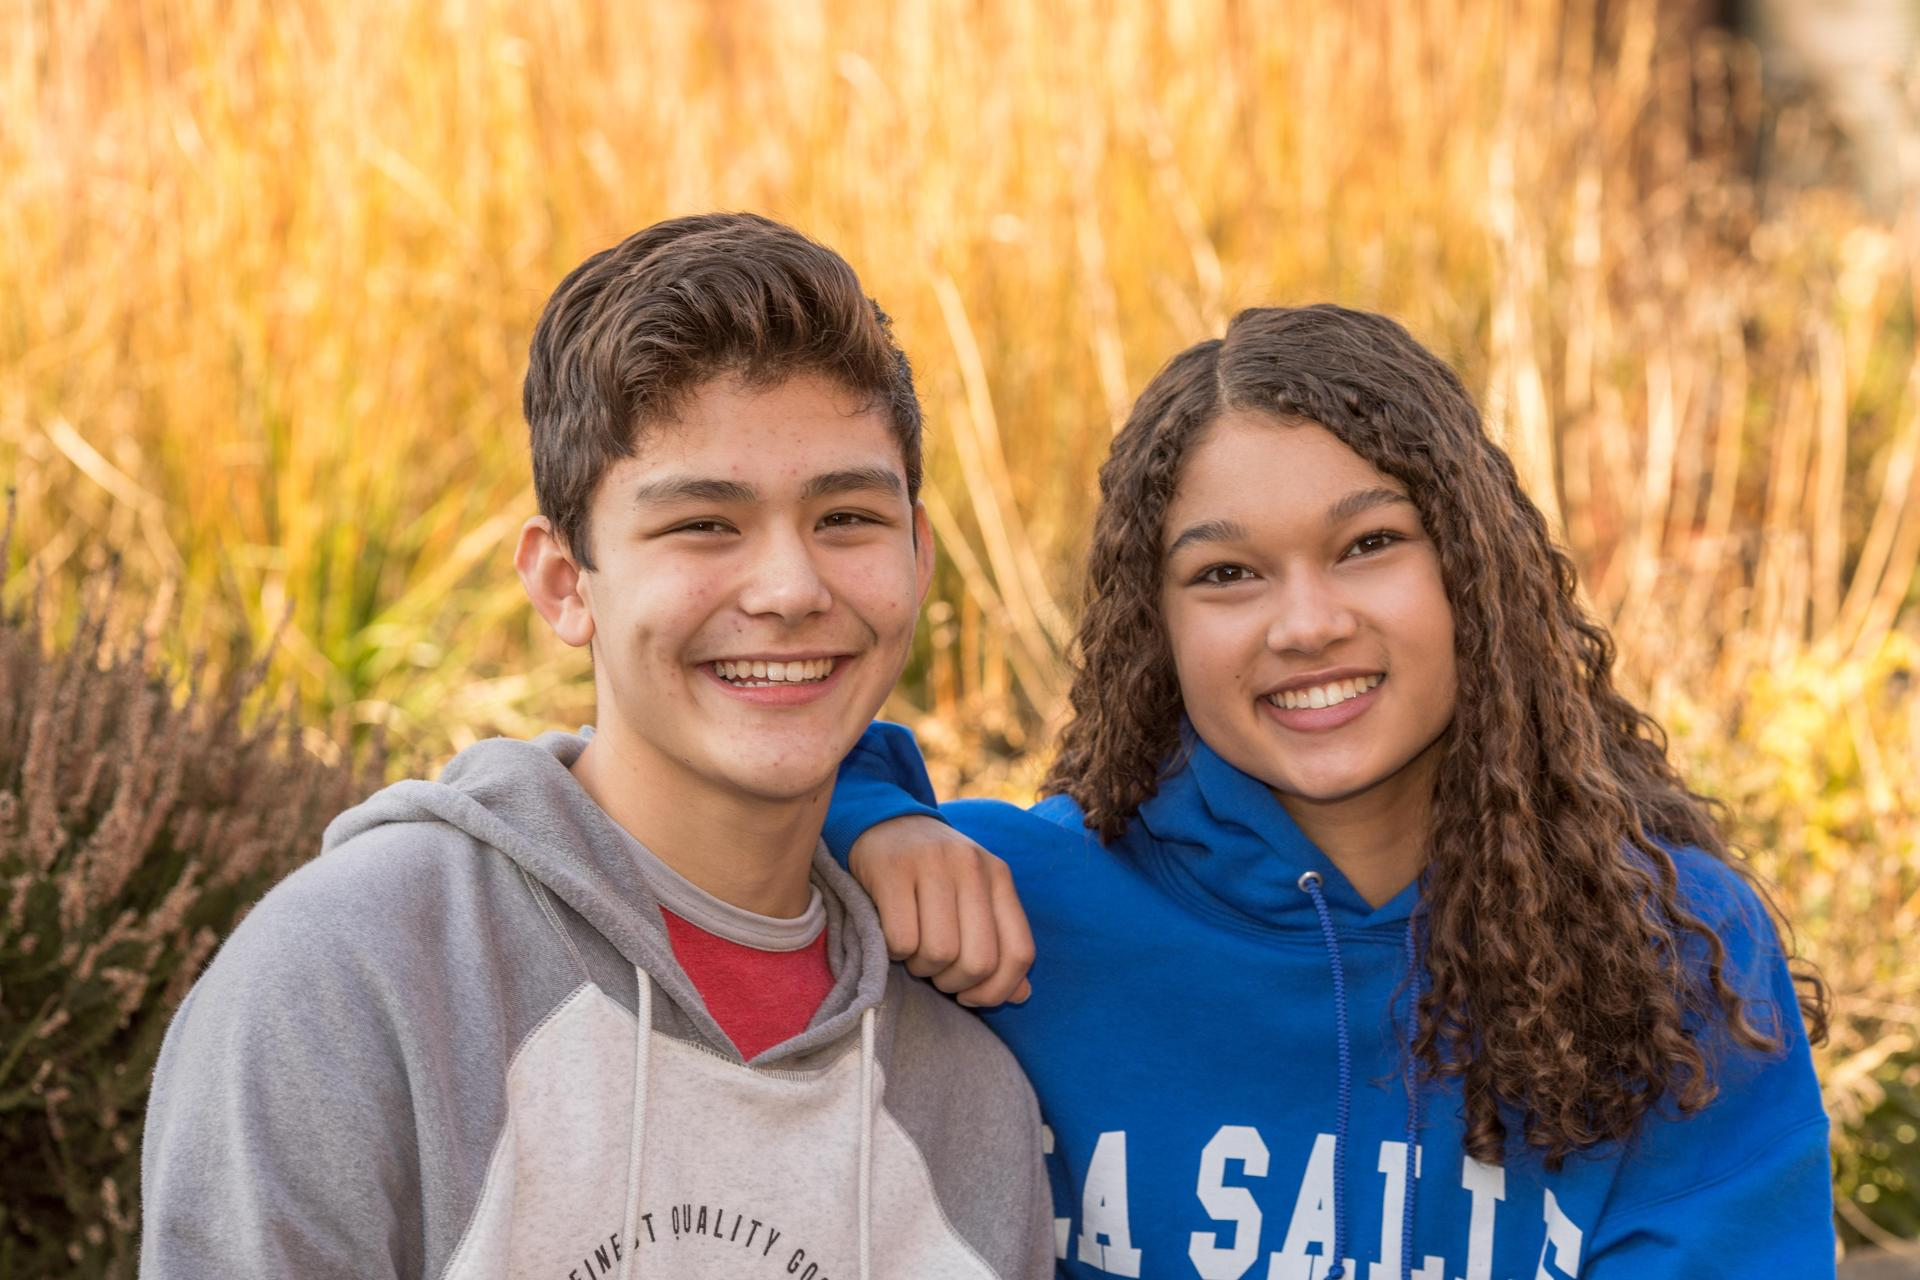 male and female student smiling